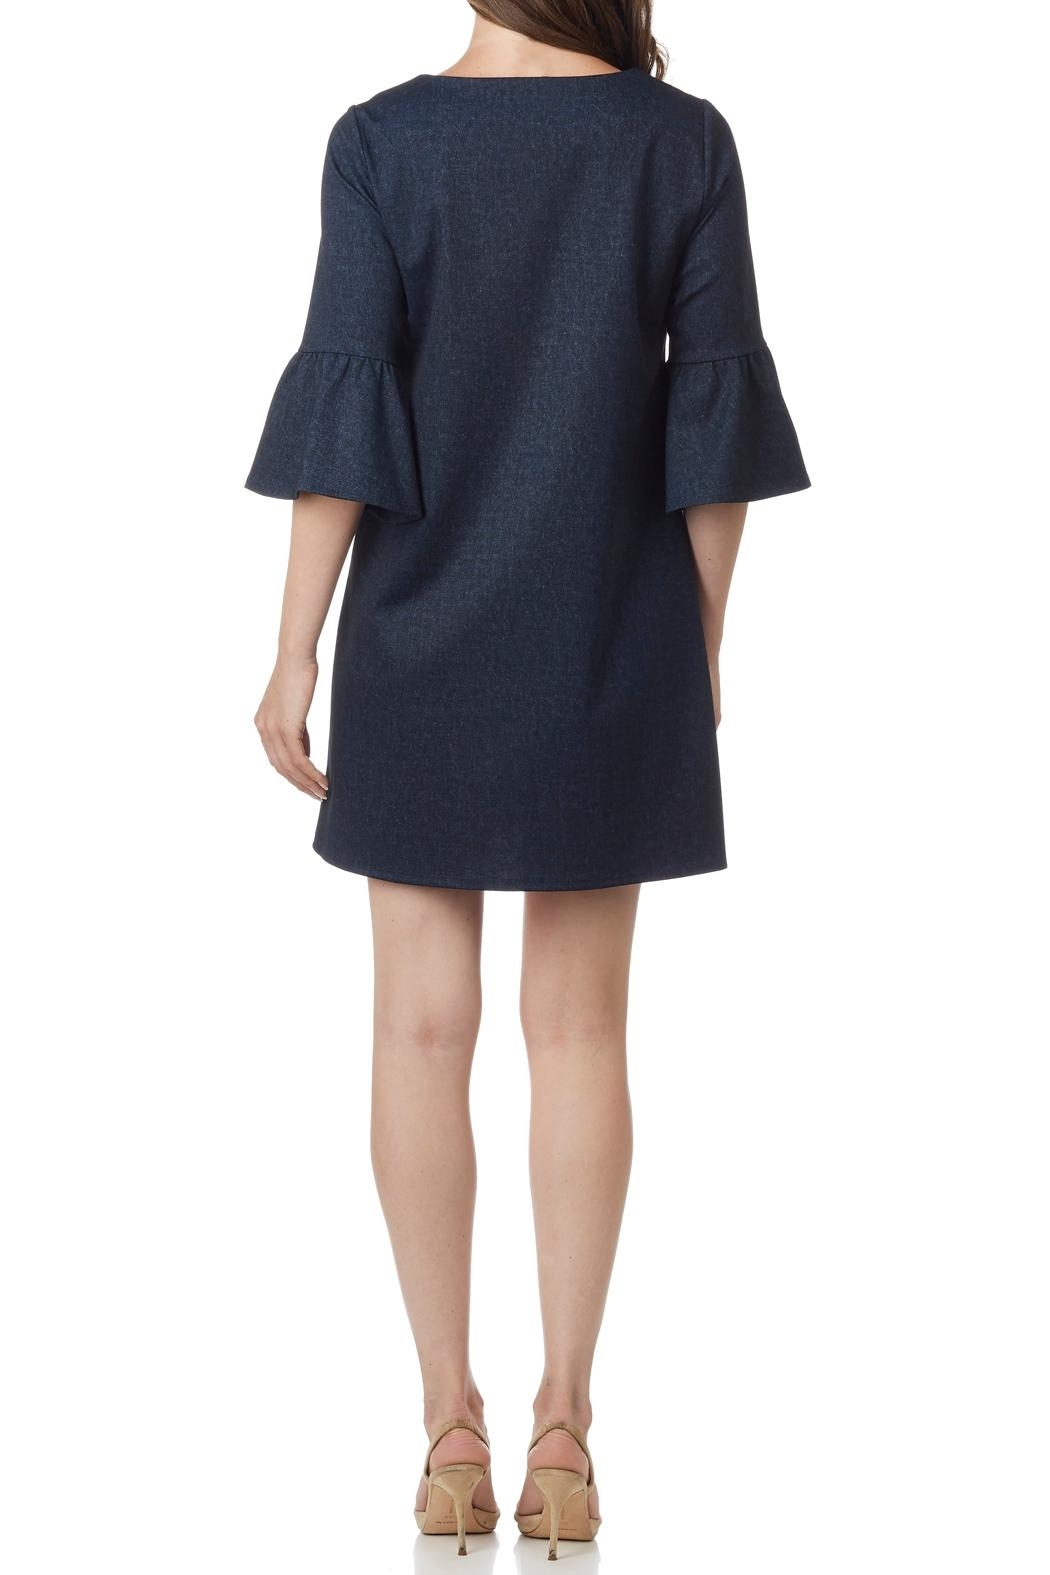 Jude Connally Shelby Club Denim Dress - Front Full Image